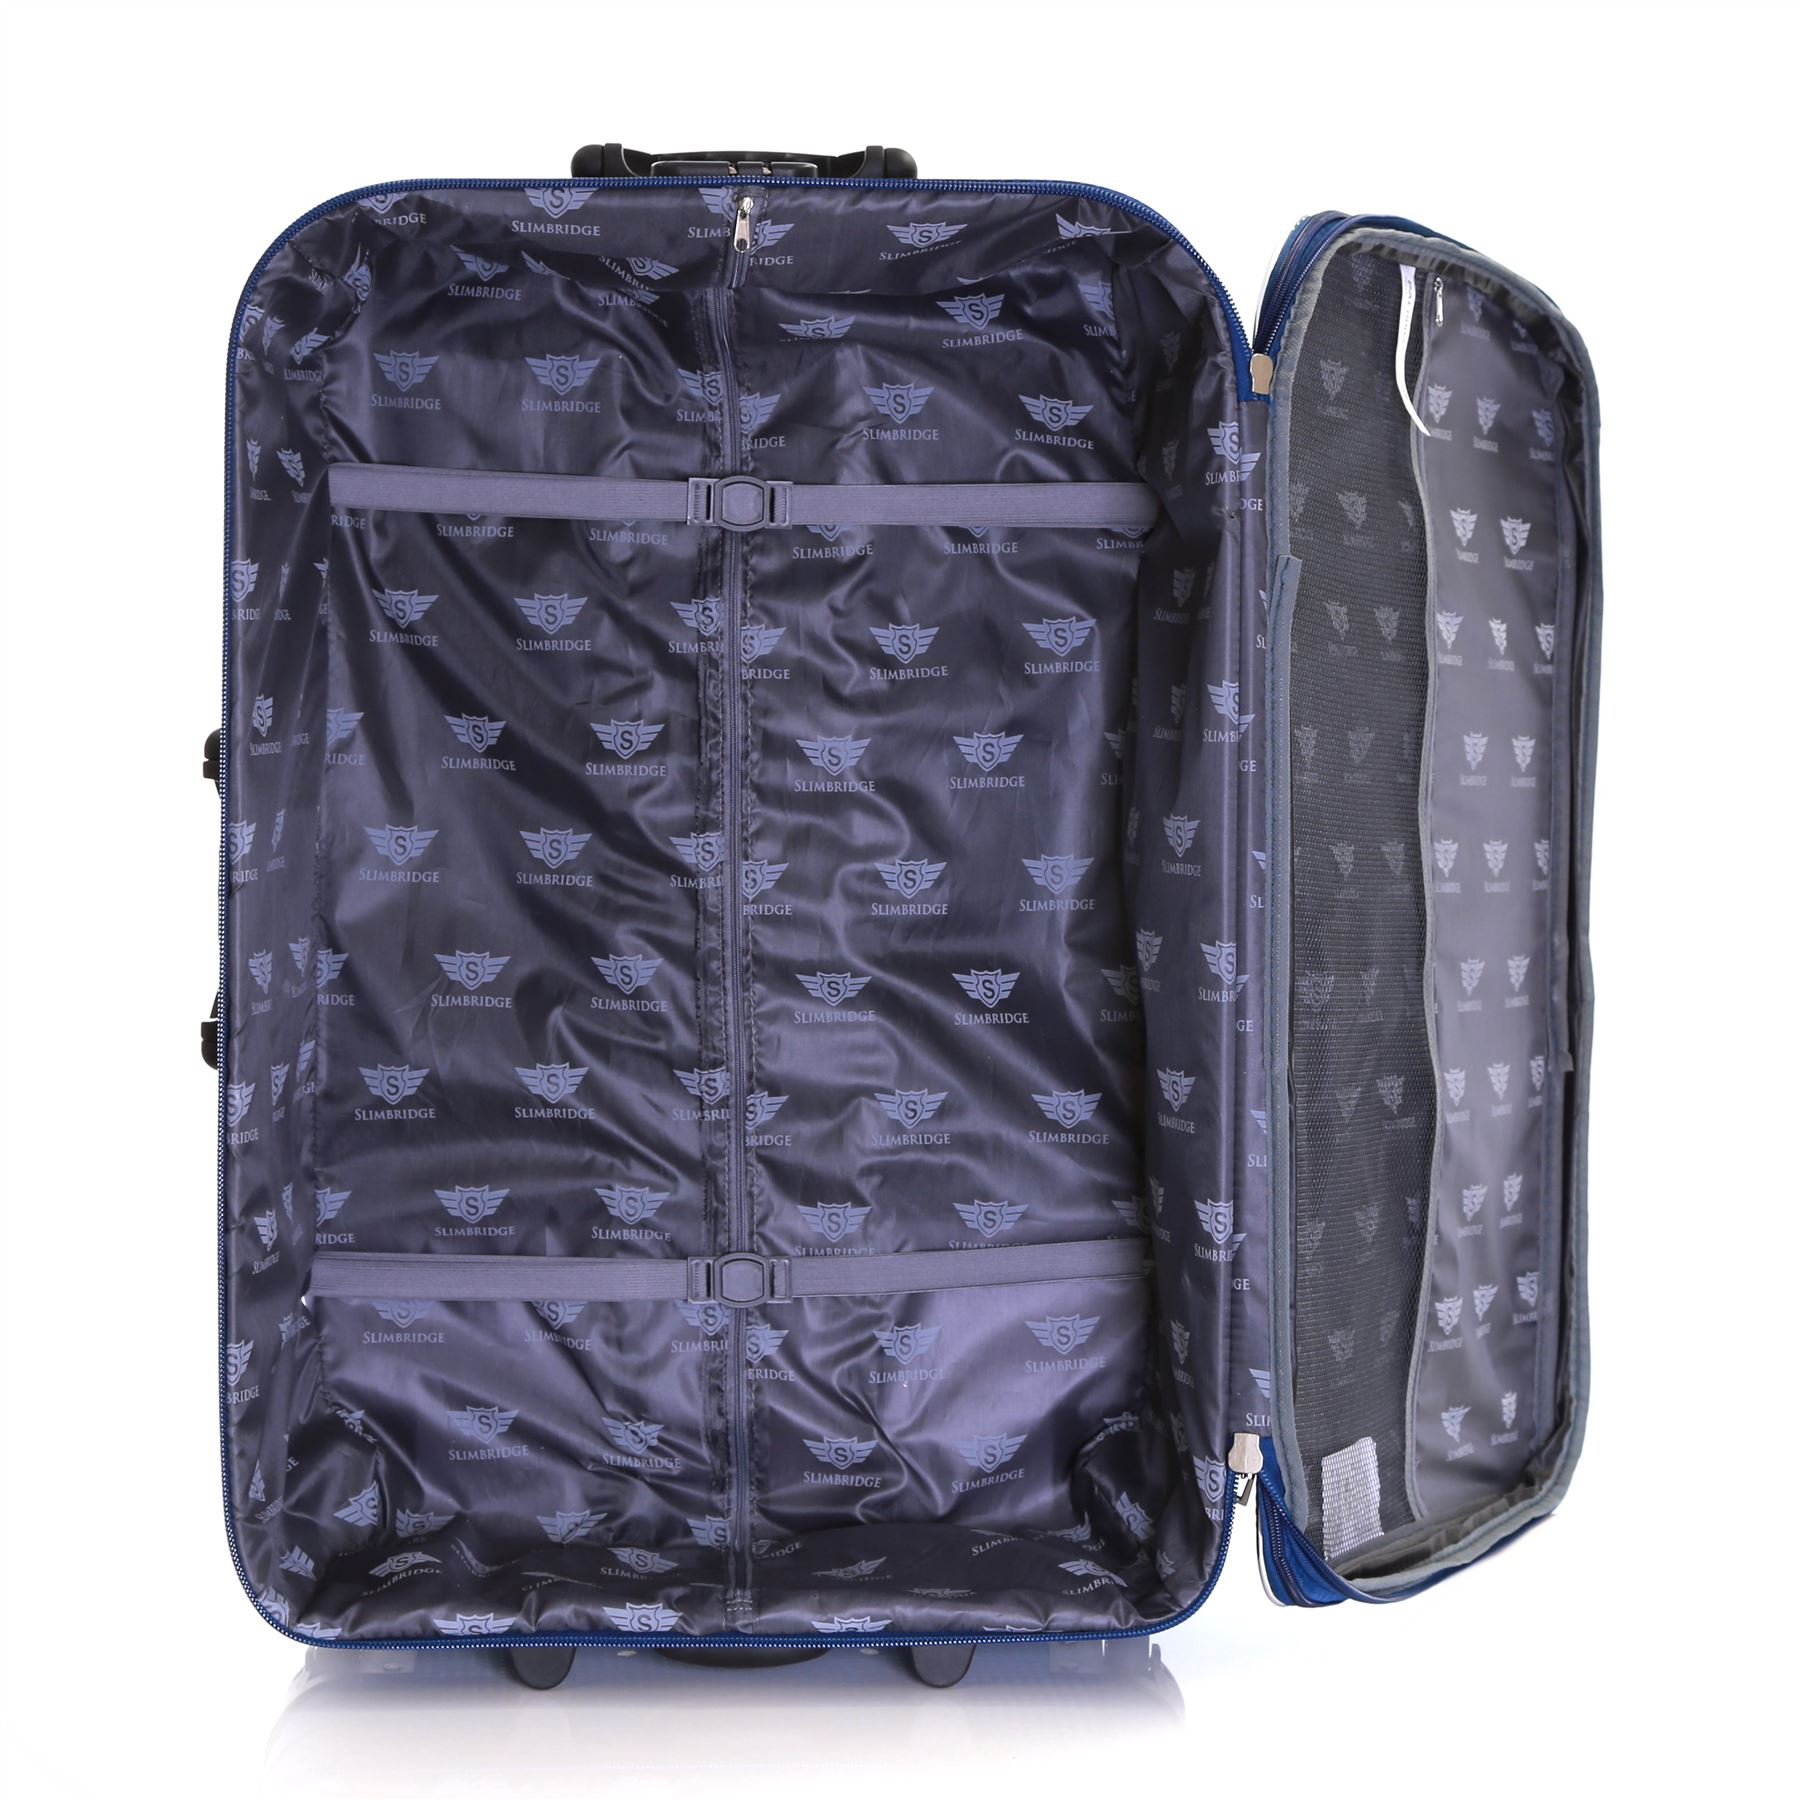 Set-of-2-Lightweight-Expandable-Luggage-Trolleys-Suitcases-Cases-Bags-Set thumbnail 14